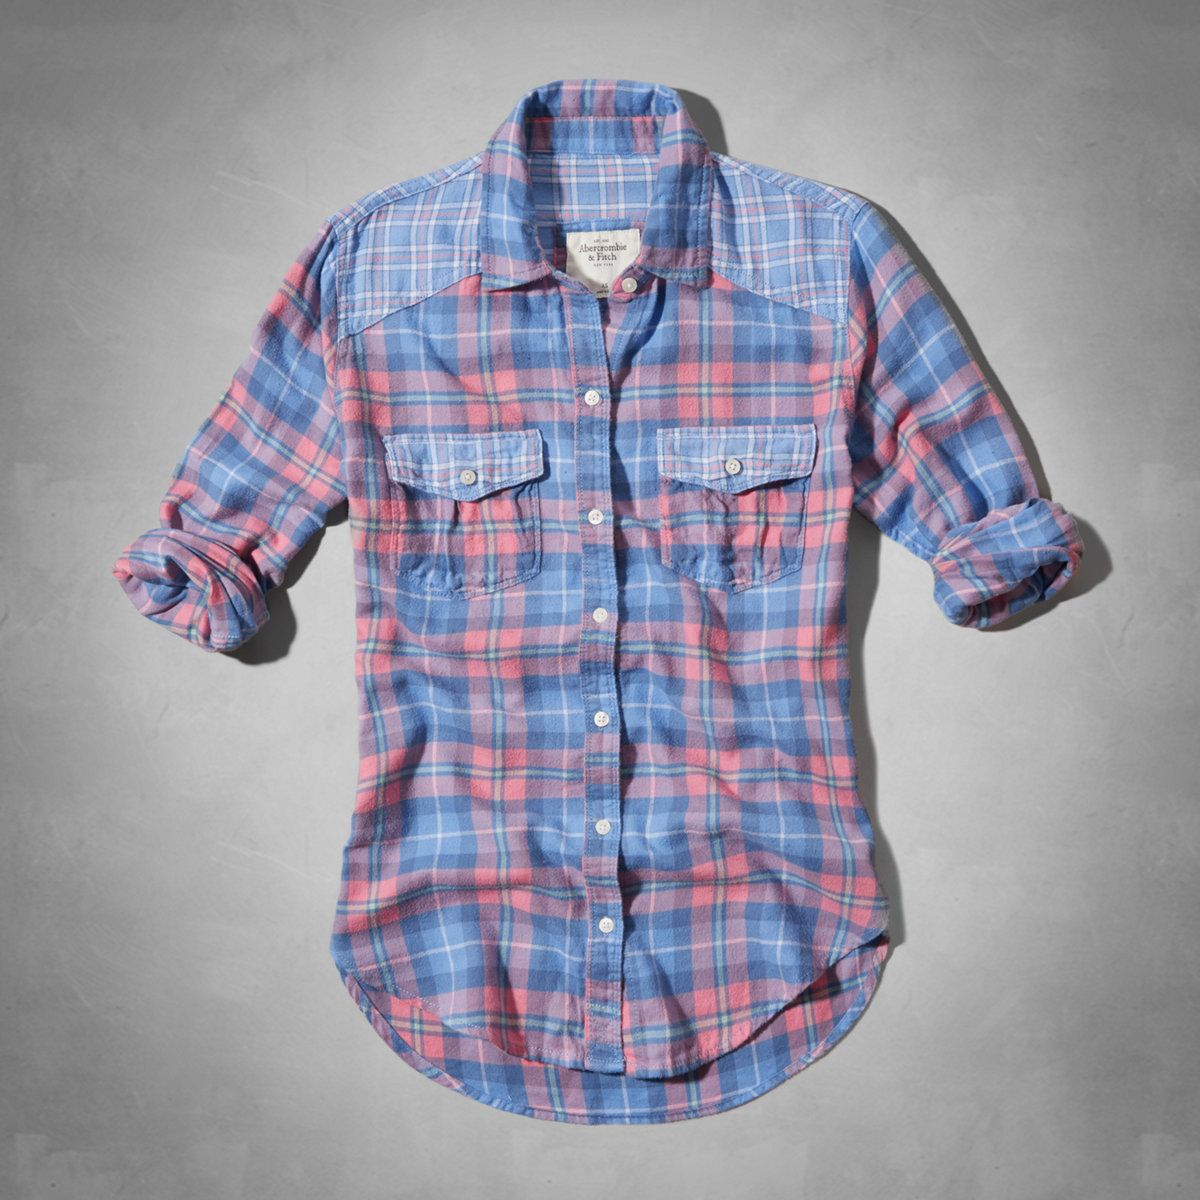 Womens Dianne Shirt - Abercrombie & Fitch pink and blue plaid flannel shirt - Womens Dianne Shirt - Abercrombie & Fitch Pink And Blue Plaid